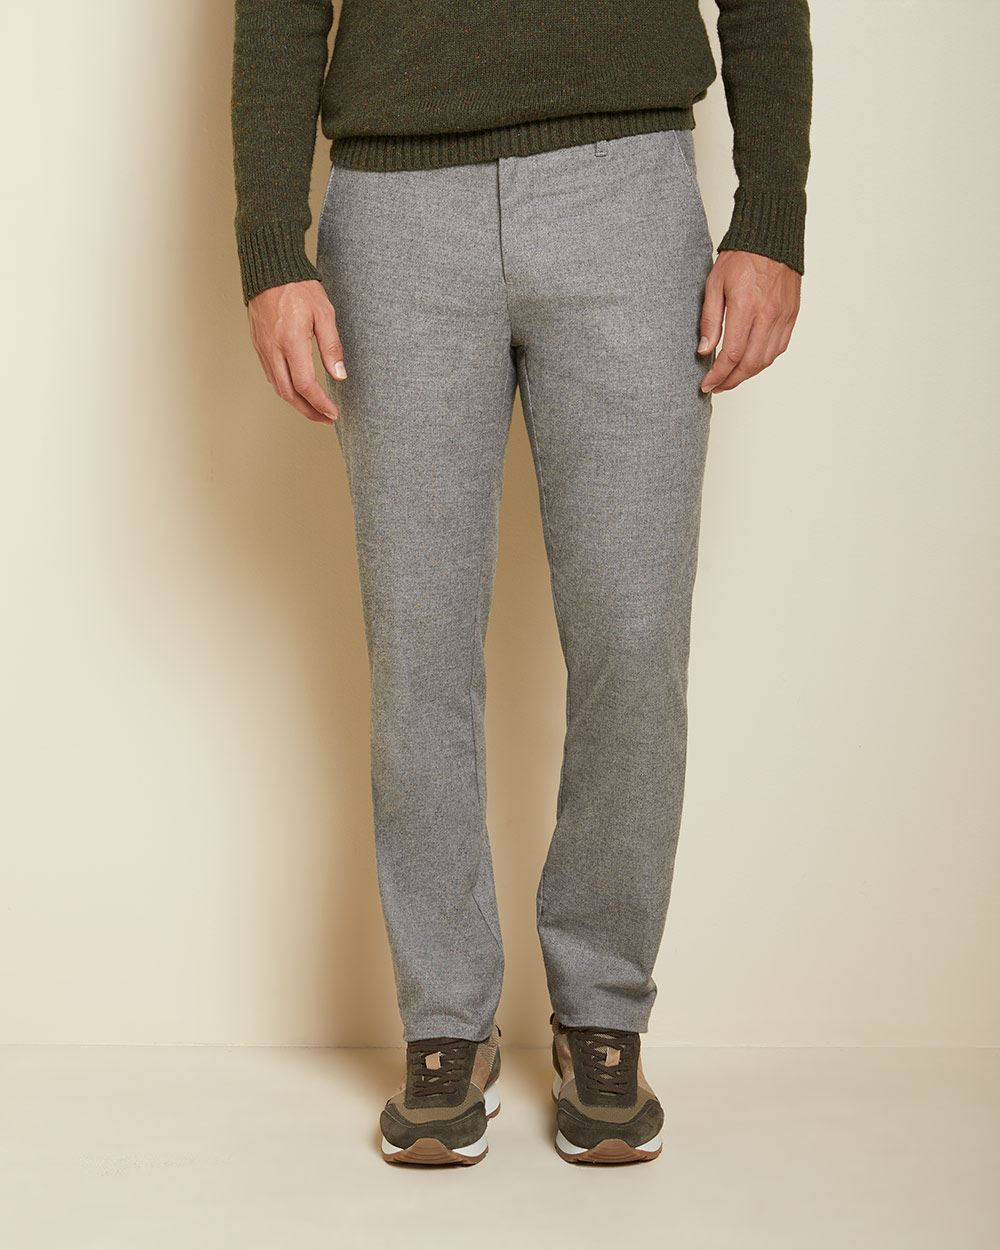 Slim fit slash pocket brushed twill pant